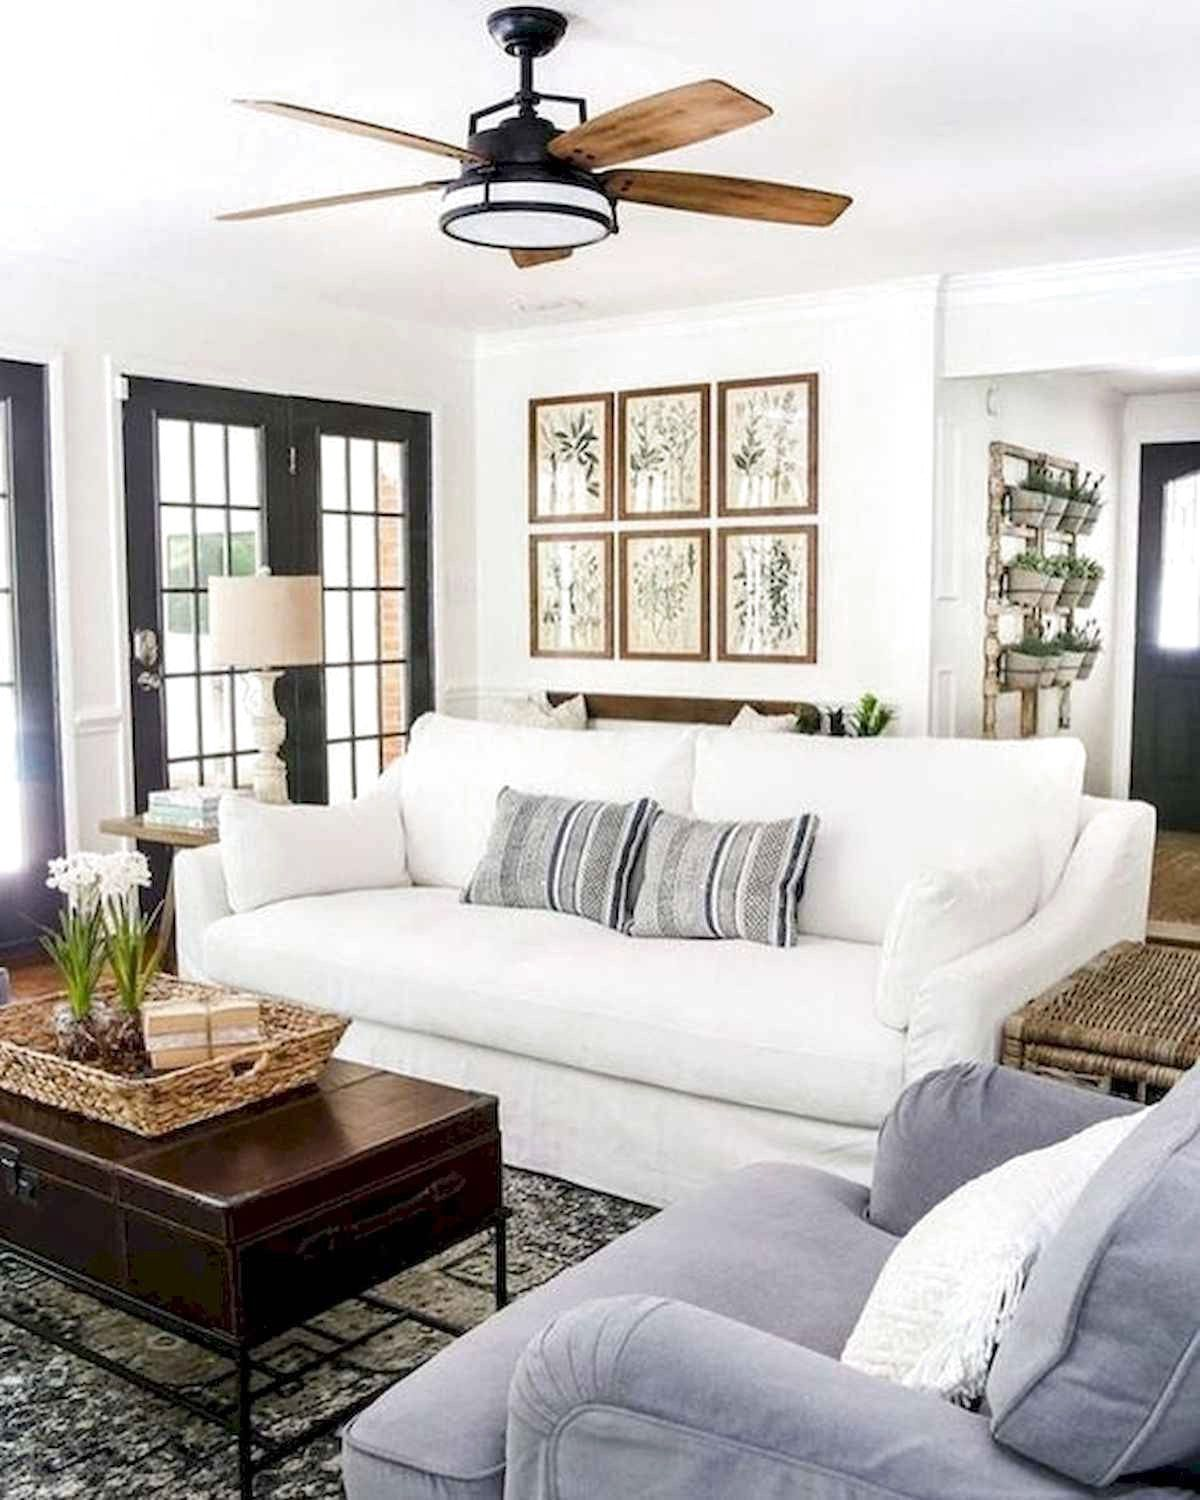 57 favourite modern farmhouse living room decor ideas and on modern farmhouse living room design and decor inspirations country farmhouse furniture id=45250